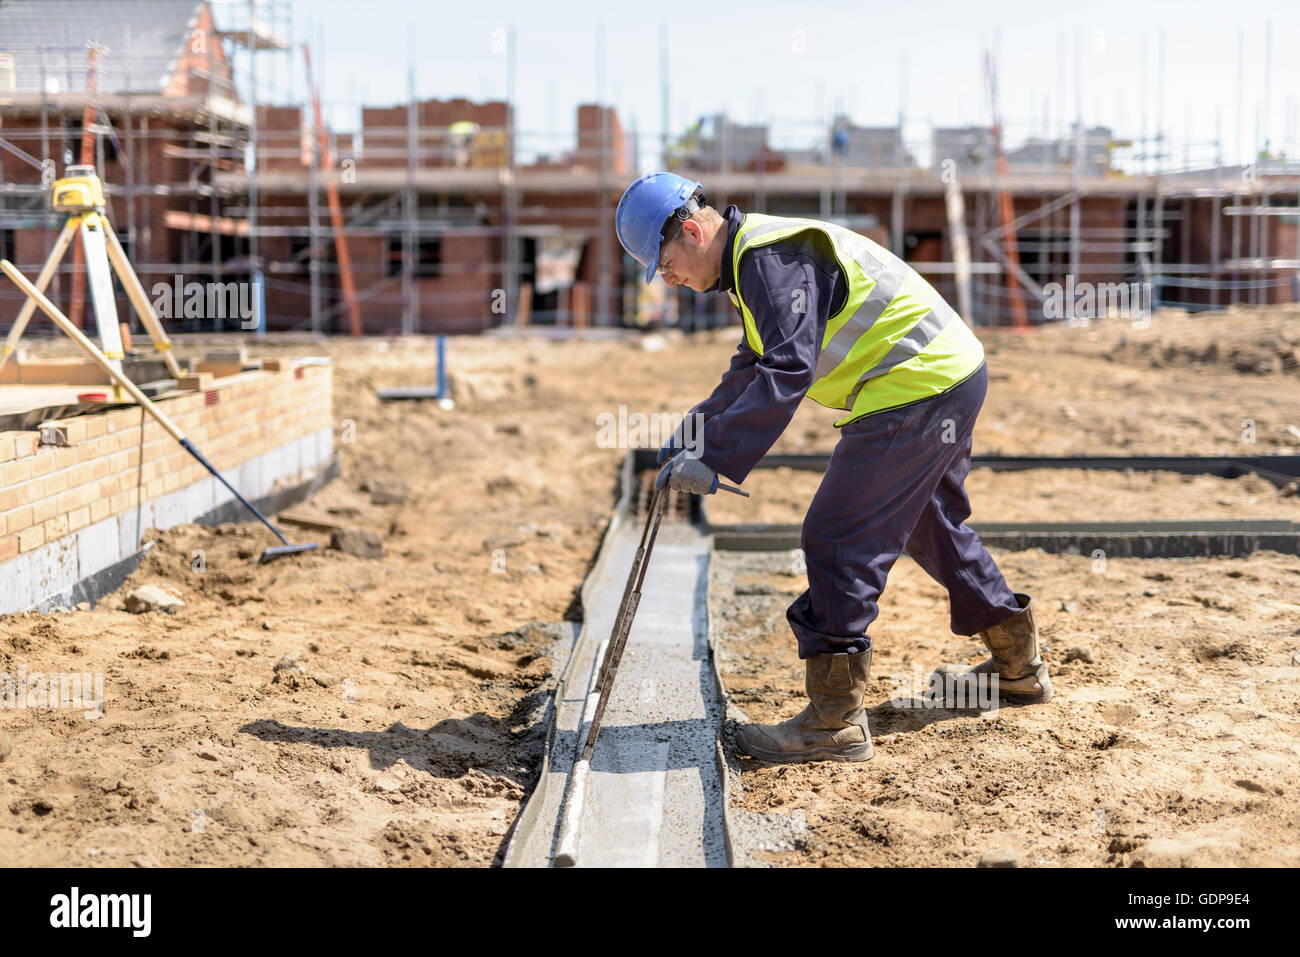 Apprentice builder laying concrete foundations on building site - Stock Image